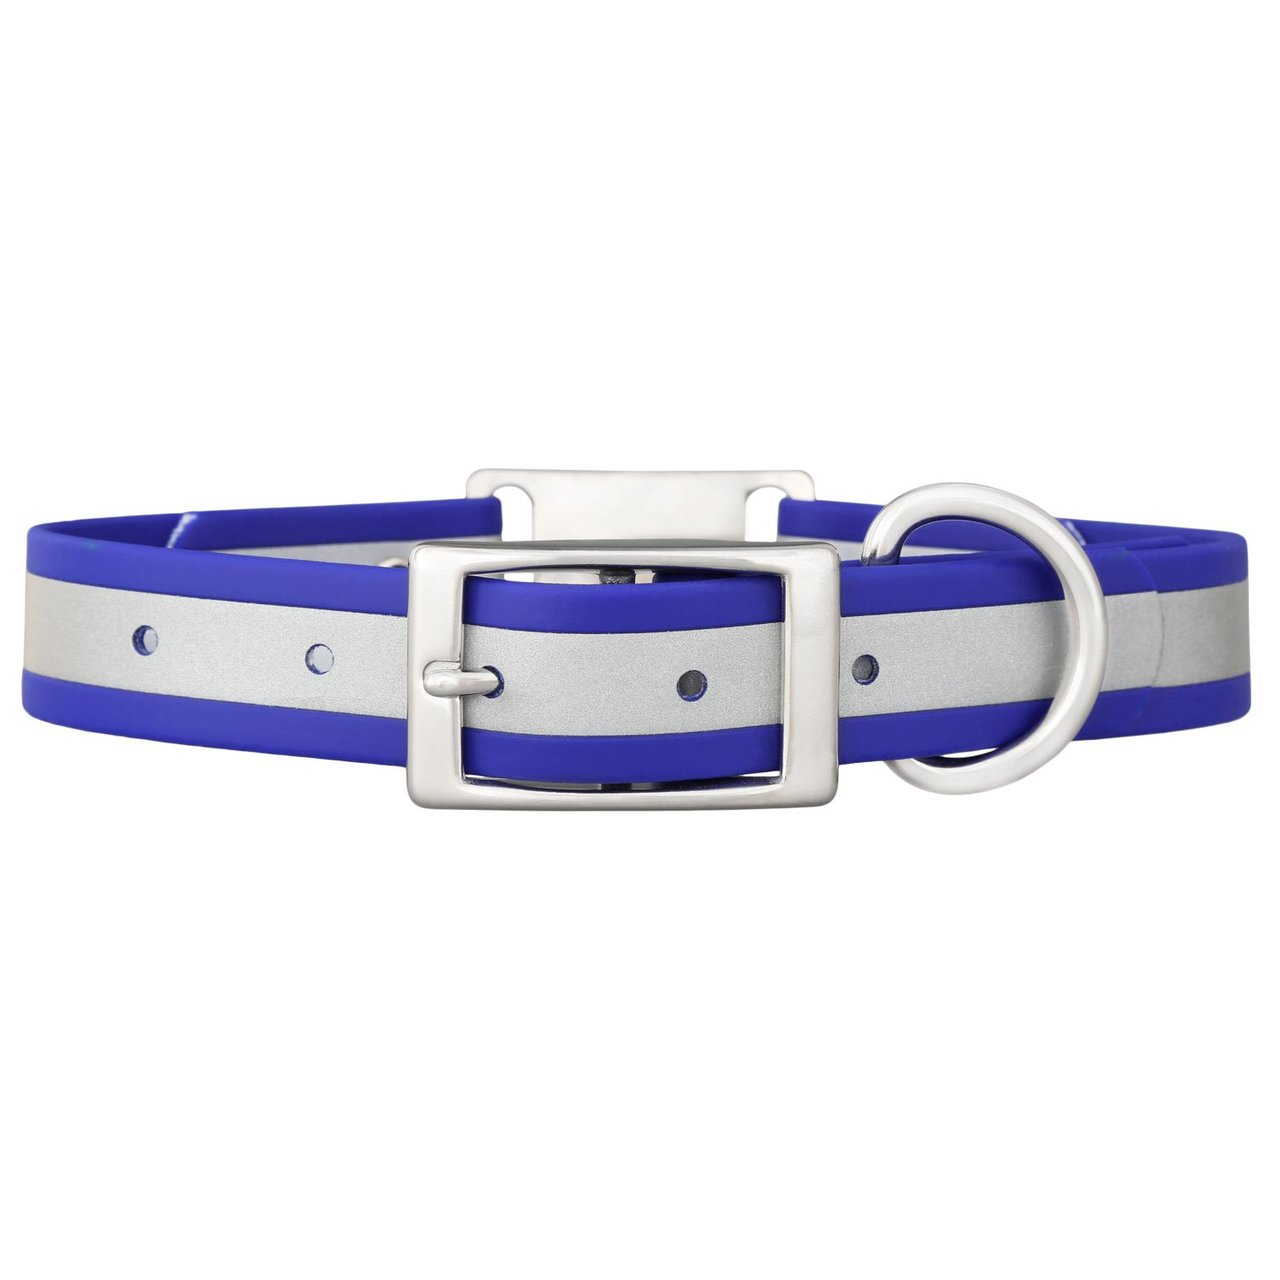 Reflective Waterproof ScruffTag Personalized Dog Collar Blue Buckle View